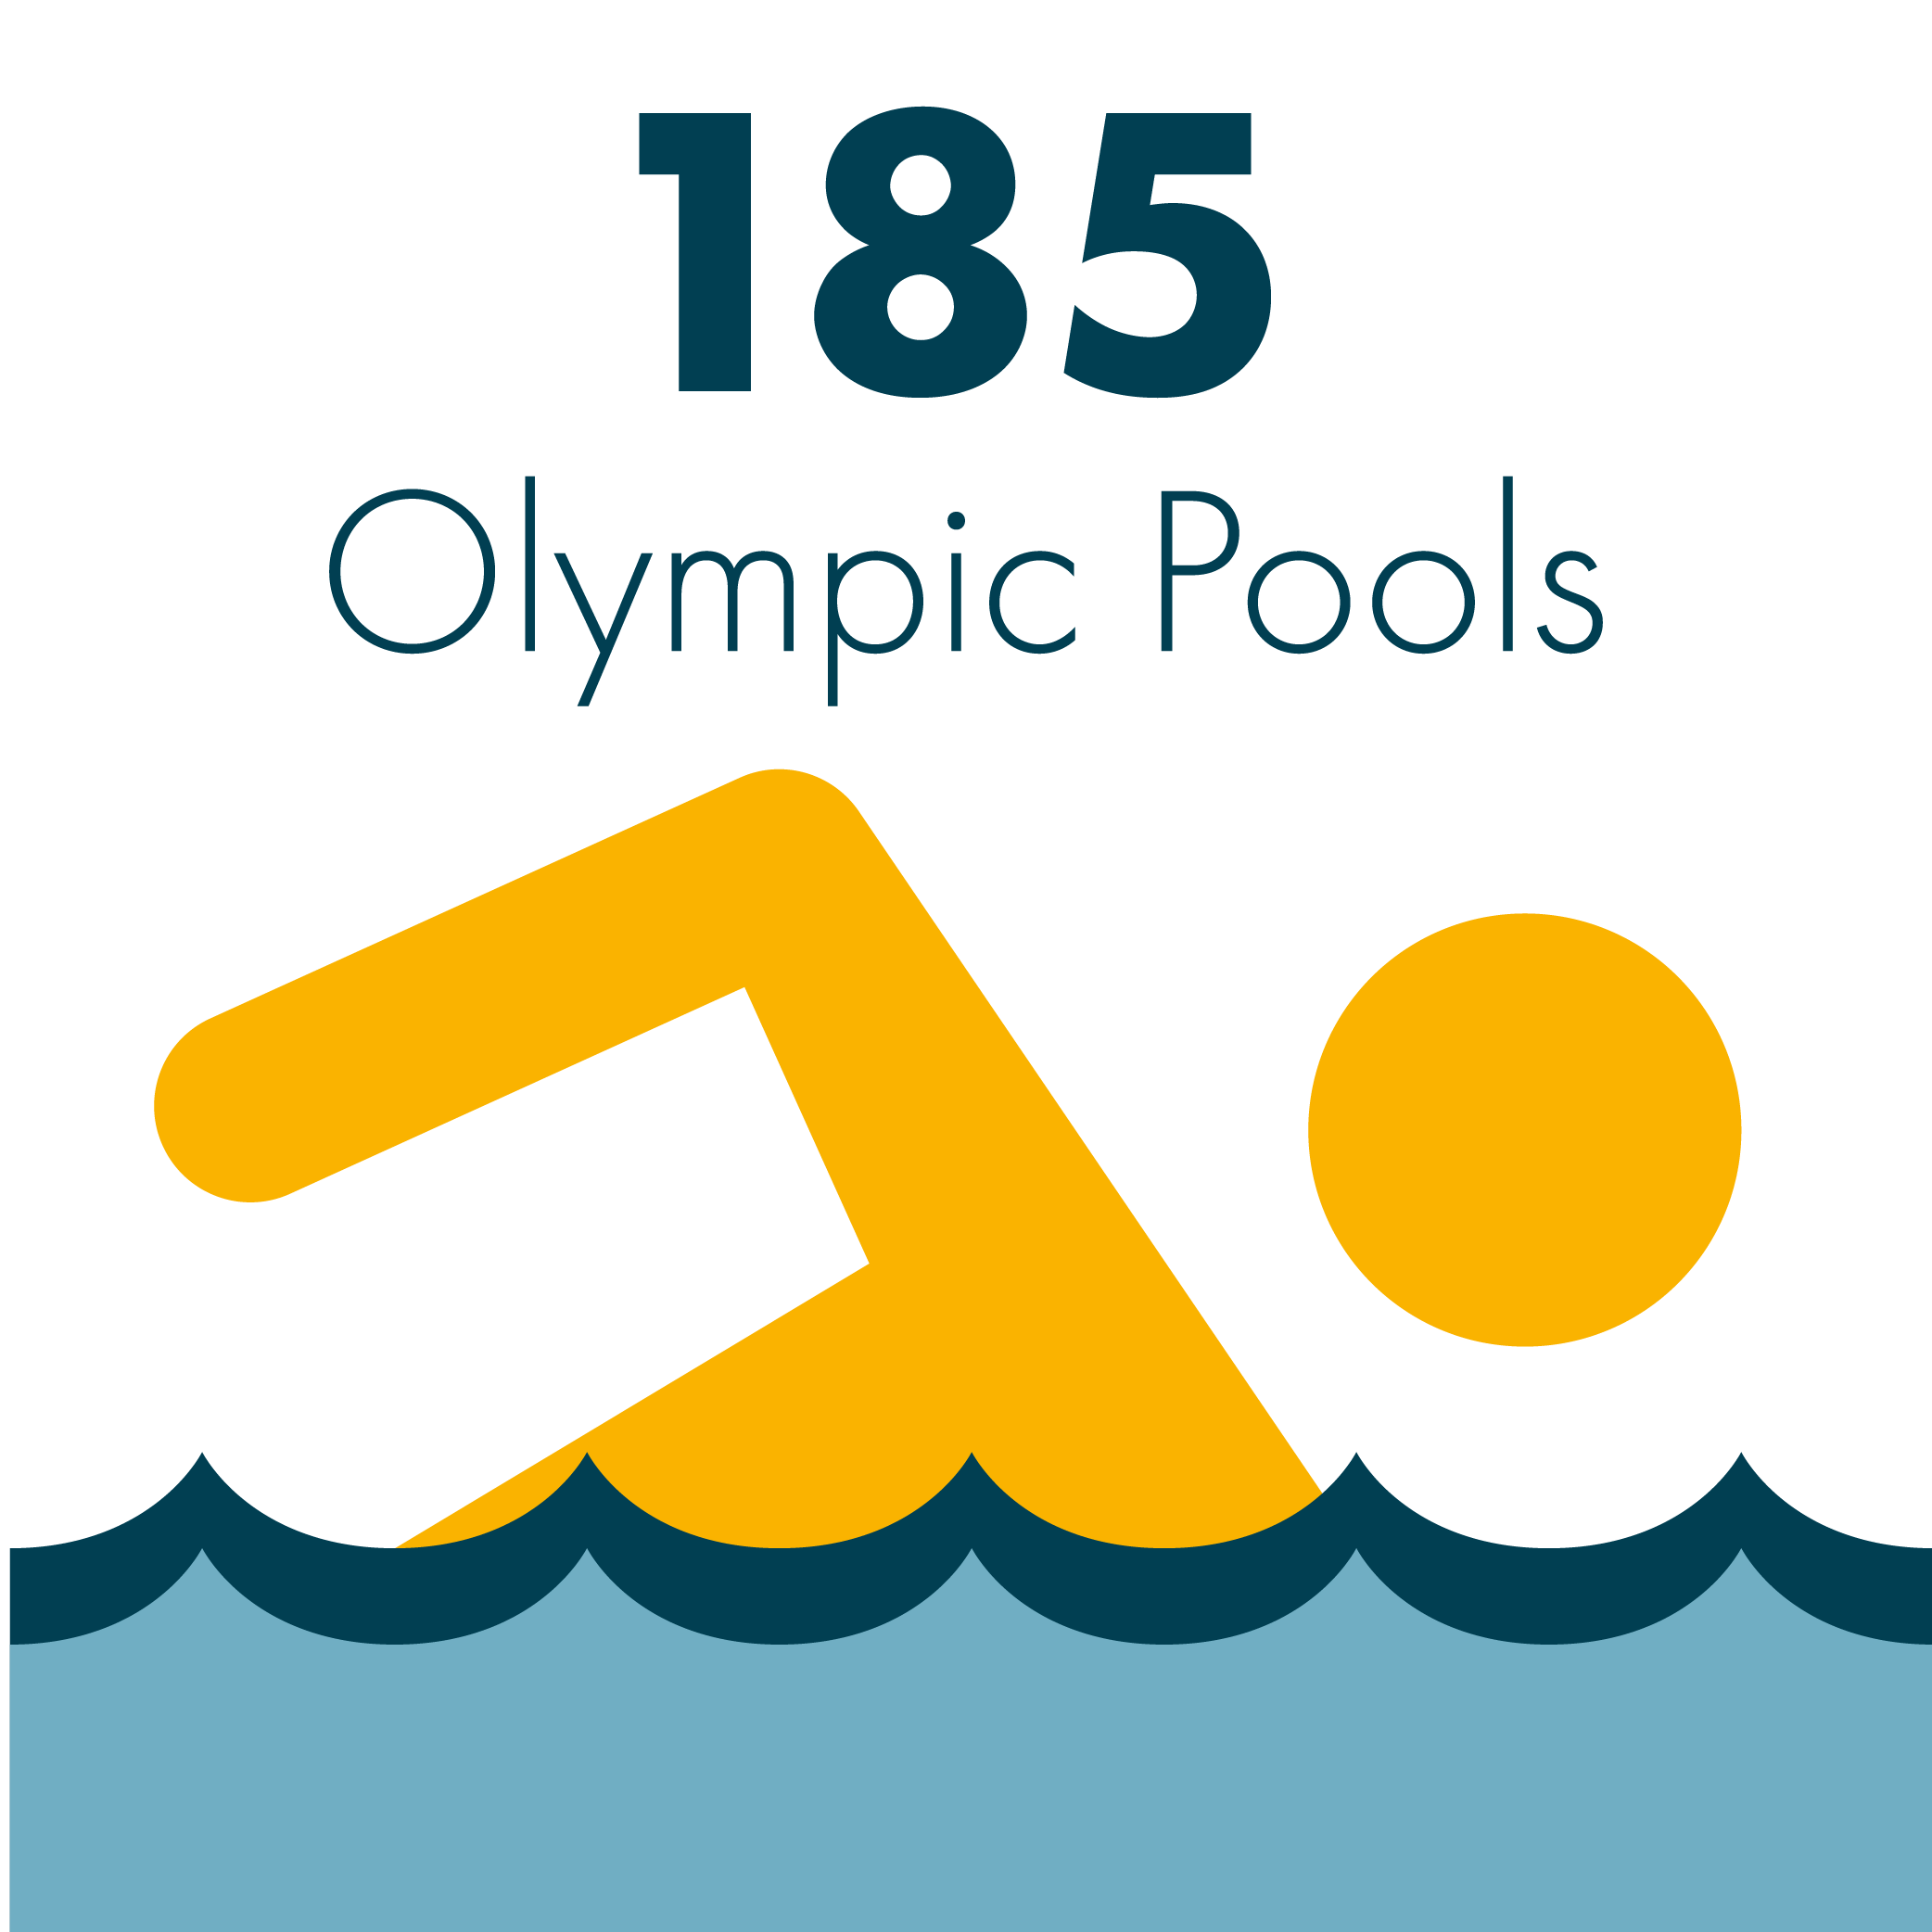 185 Olympic Pools